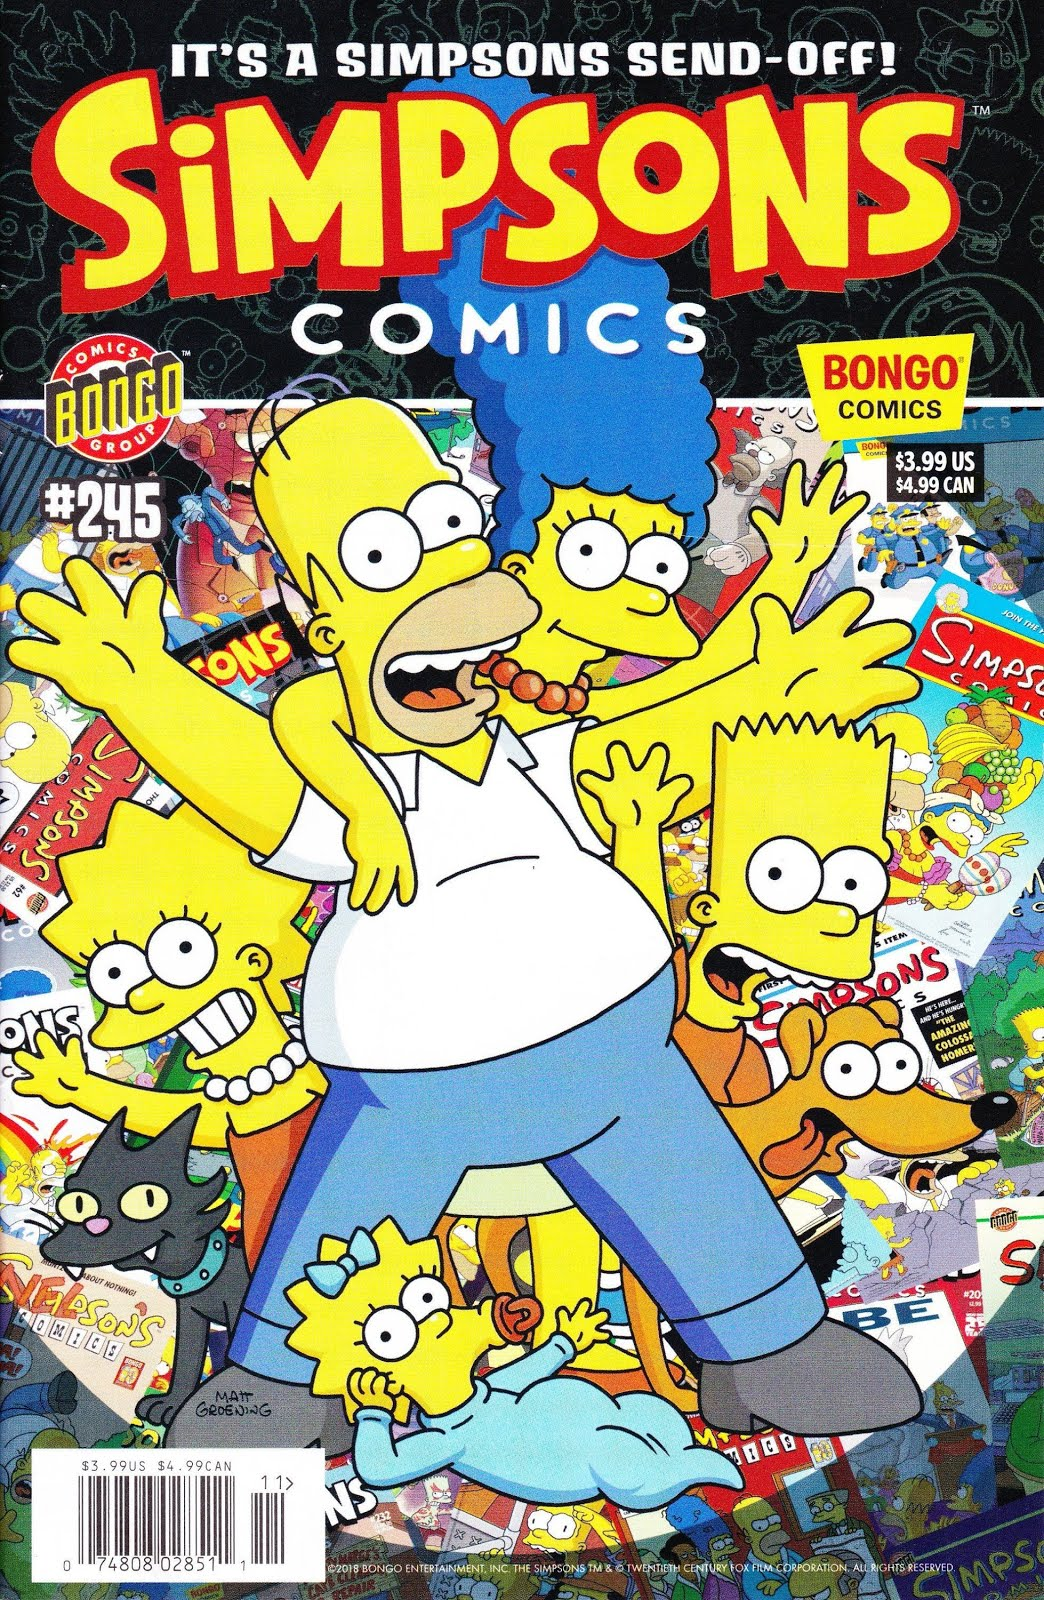 The Simpsons #245 Final Issue October 2018 Bongo Comics Grade NM